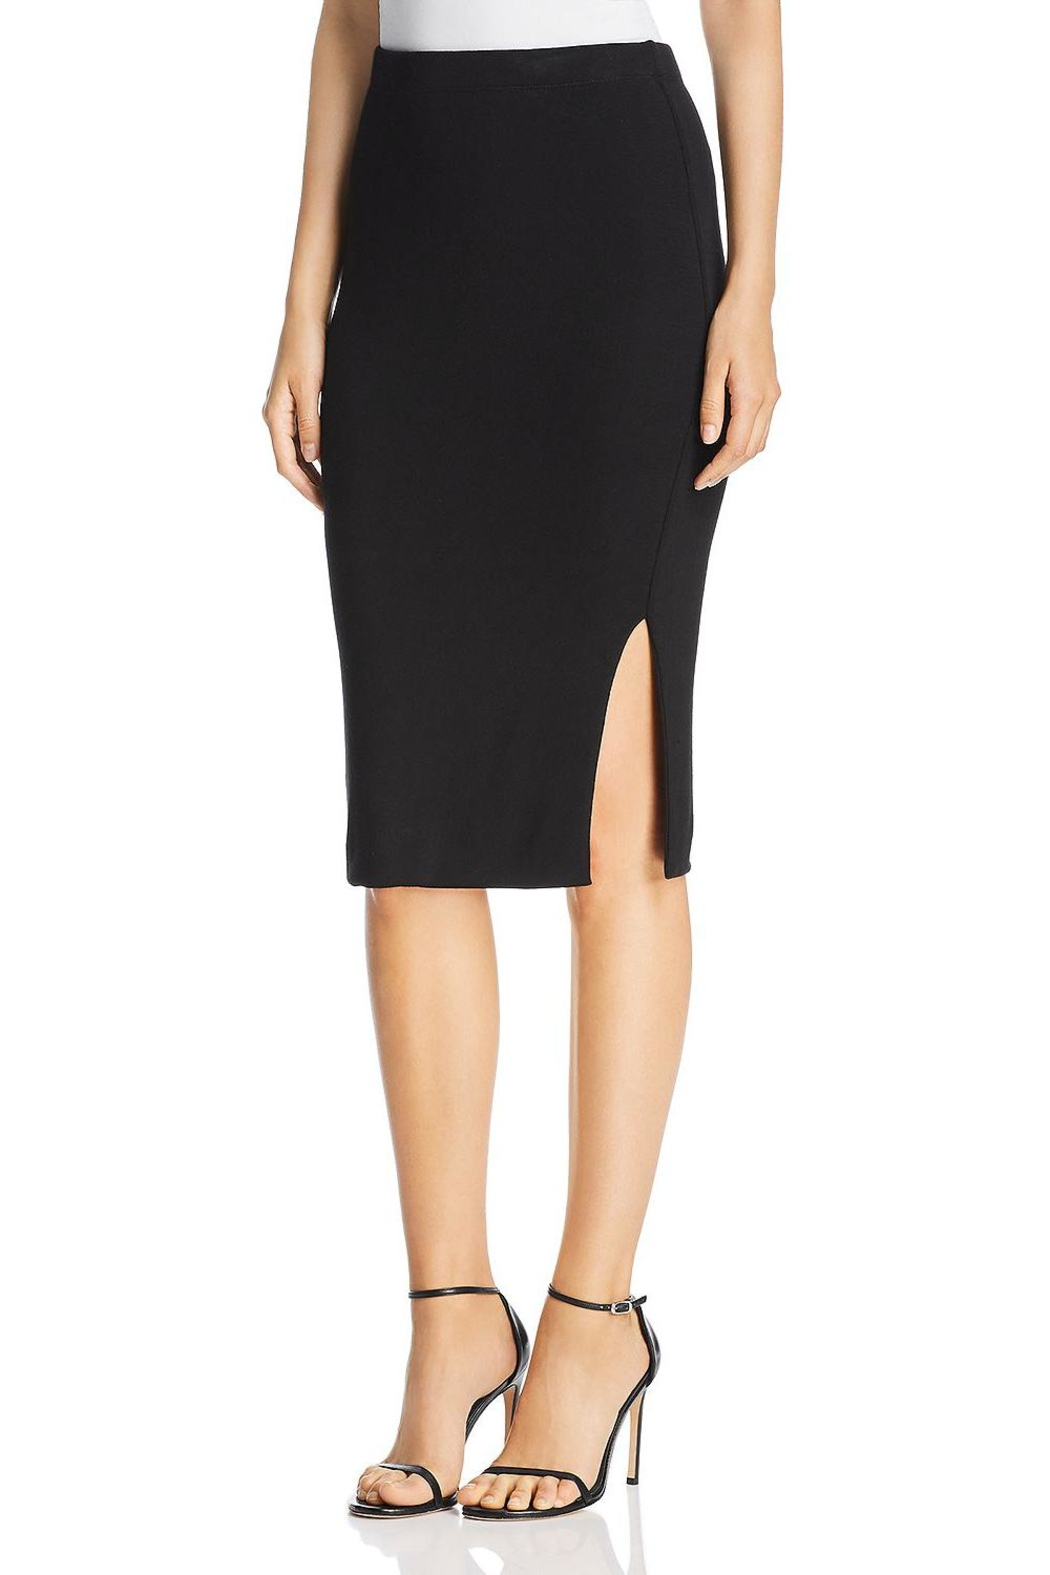 3 Dot Luxe-Knit Pencil Skirt - Main Image